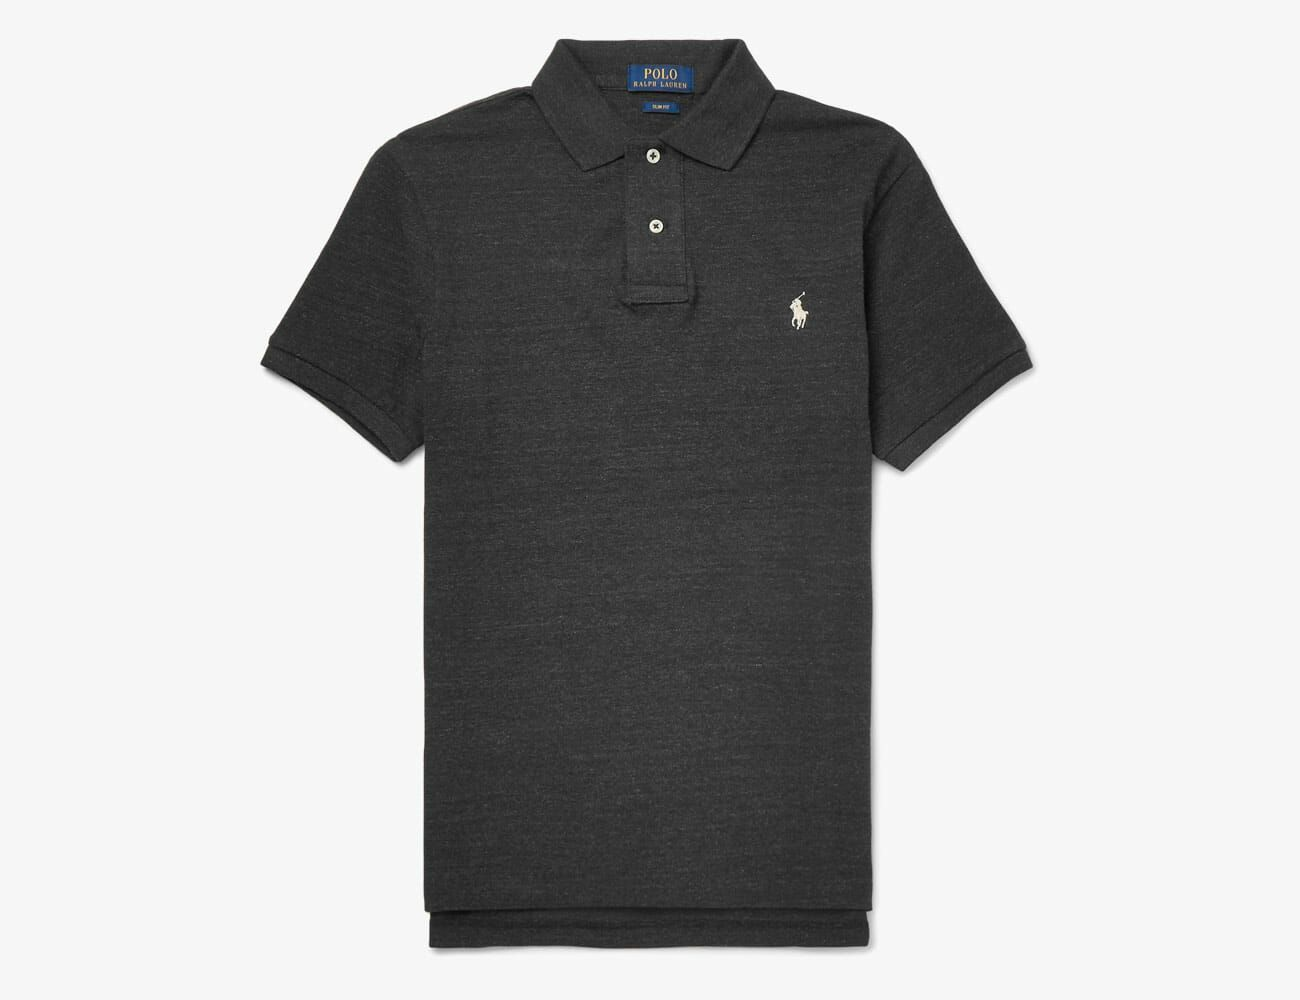 The 10 Best Polo Shirts to Wear This Summer